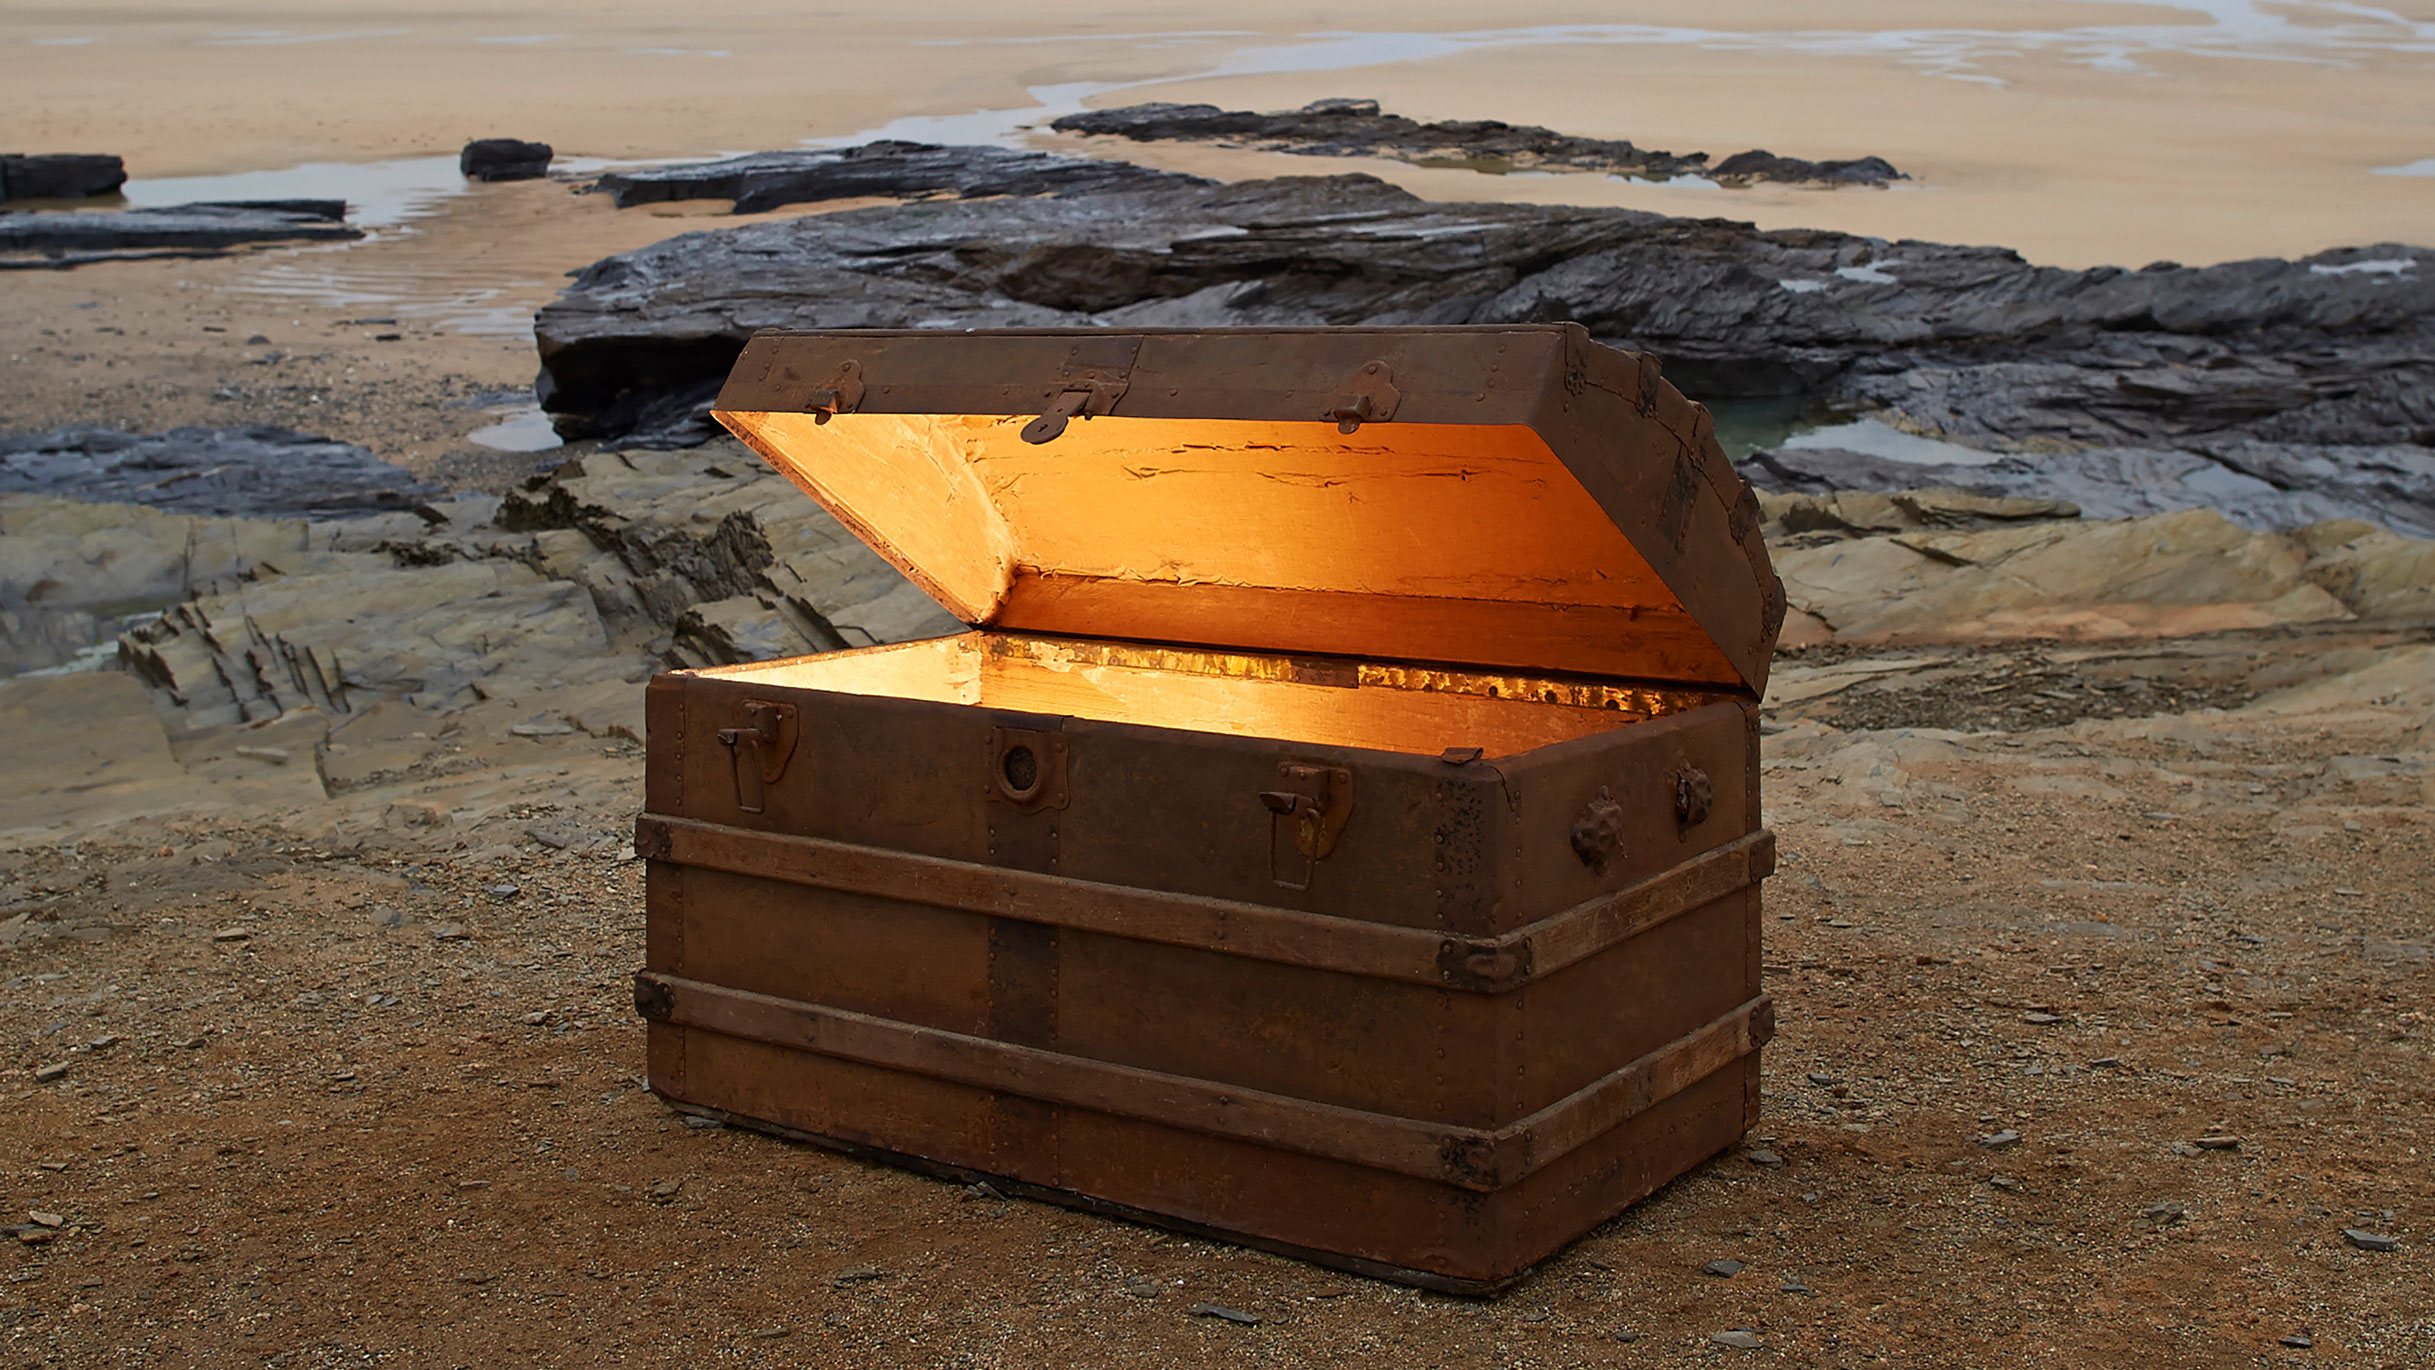 Open a golden treasure chest on a deserted beach.